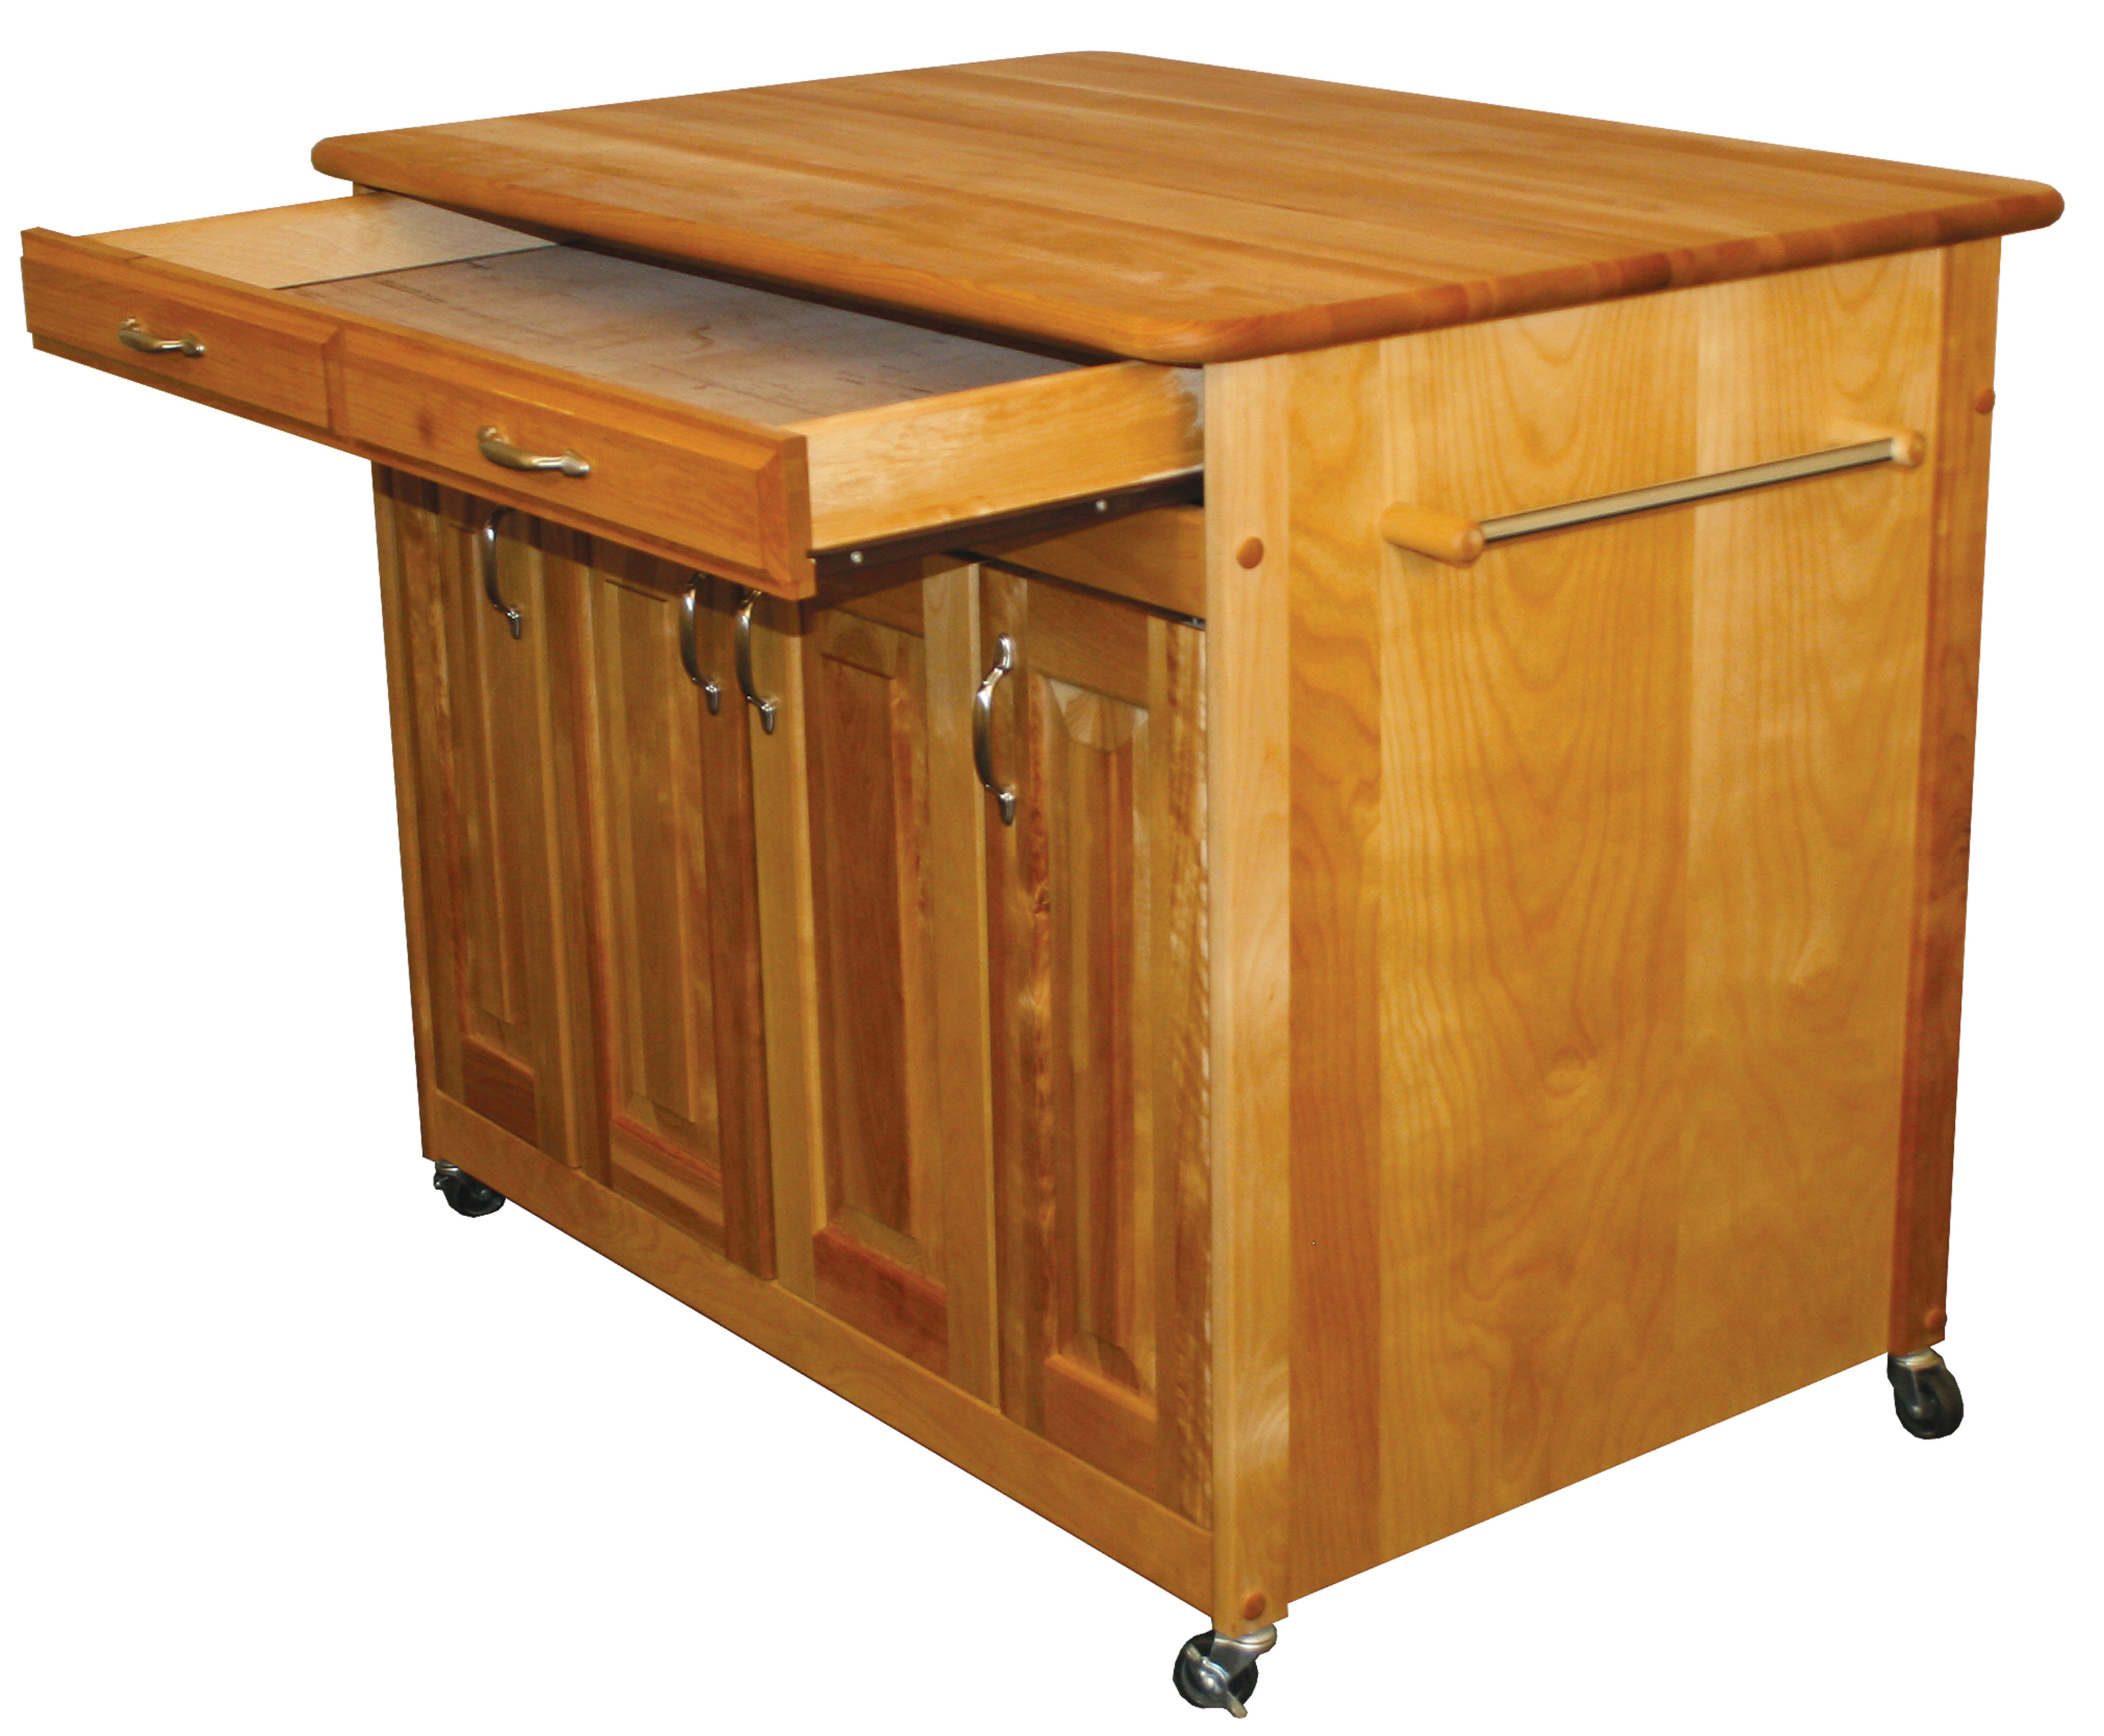 catskill craftsmen butcher block work center plus model